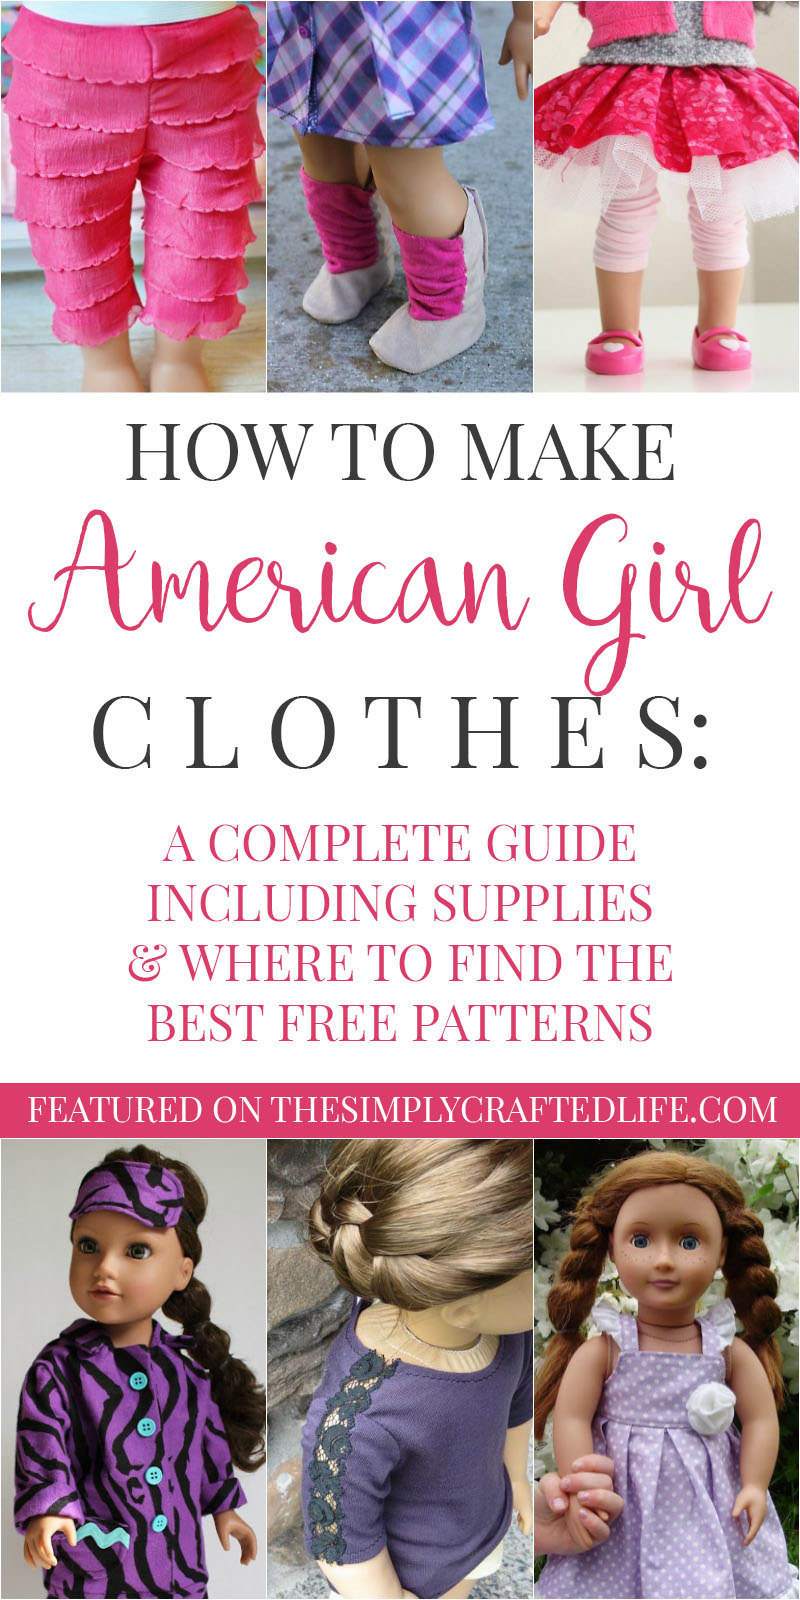 photograph regarding Free Printable 18 Inch Doll Clothes Patterns called How in the direction of Create American Lady Doll Apparel: A Expert in the direction of No cost AG